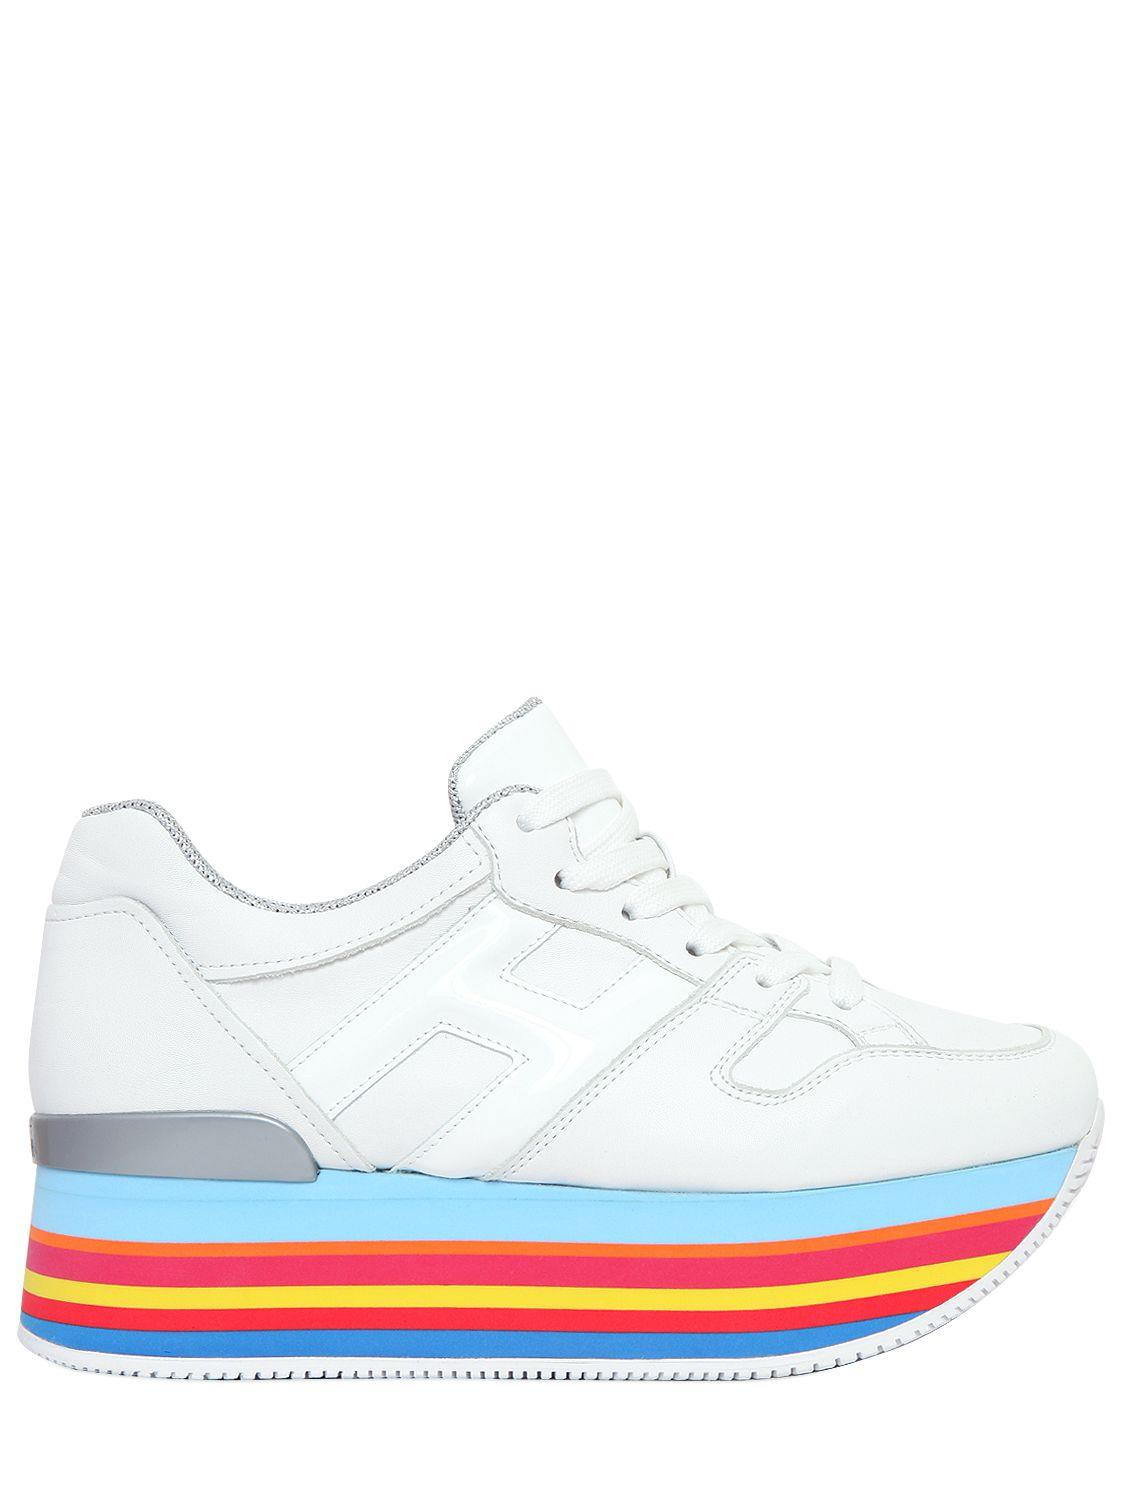 Hogan 70mm Maxi 222 Leather Sneakers in White/Rainbow (White) - Lyst